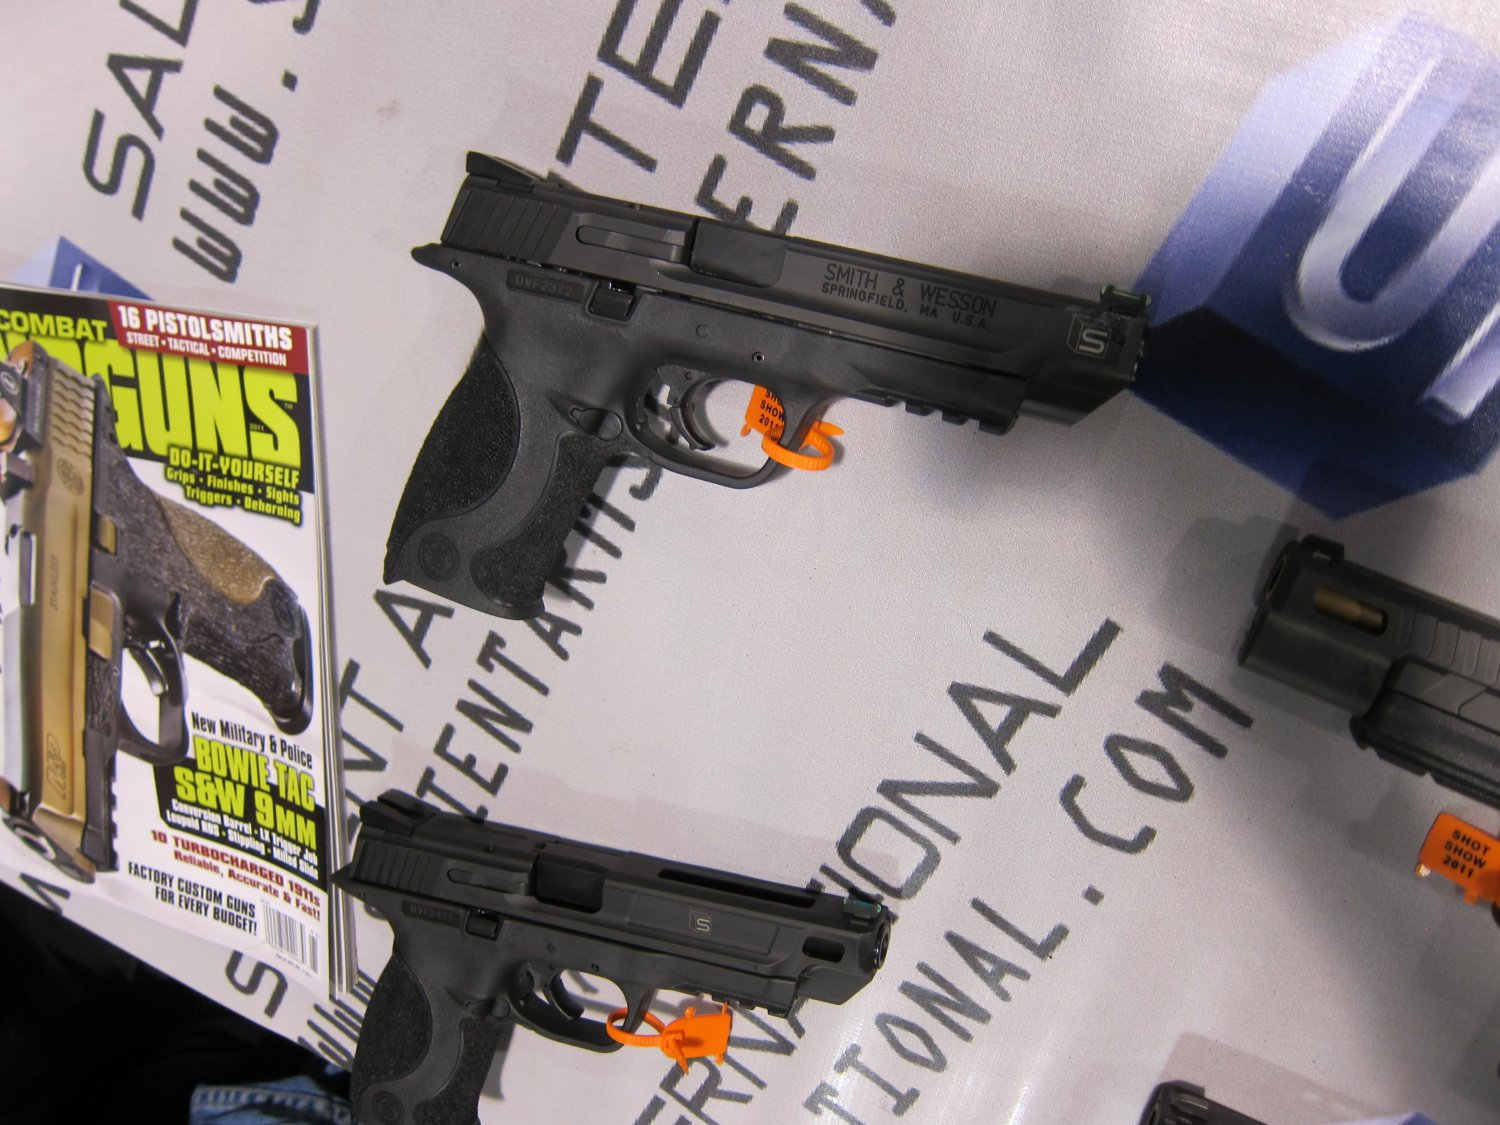 Salient Arms International Custom Smith  Wesson SW MP Pistols 4 <!  :en  >Salient Arms International (SAI) Custom Pistols, Rifles, and Shotguns for Competition and Carry Displayed at SHOT Show 2011 <!  :  >